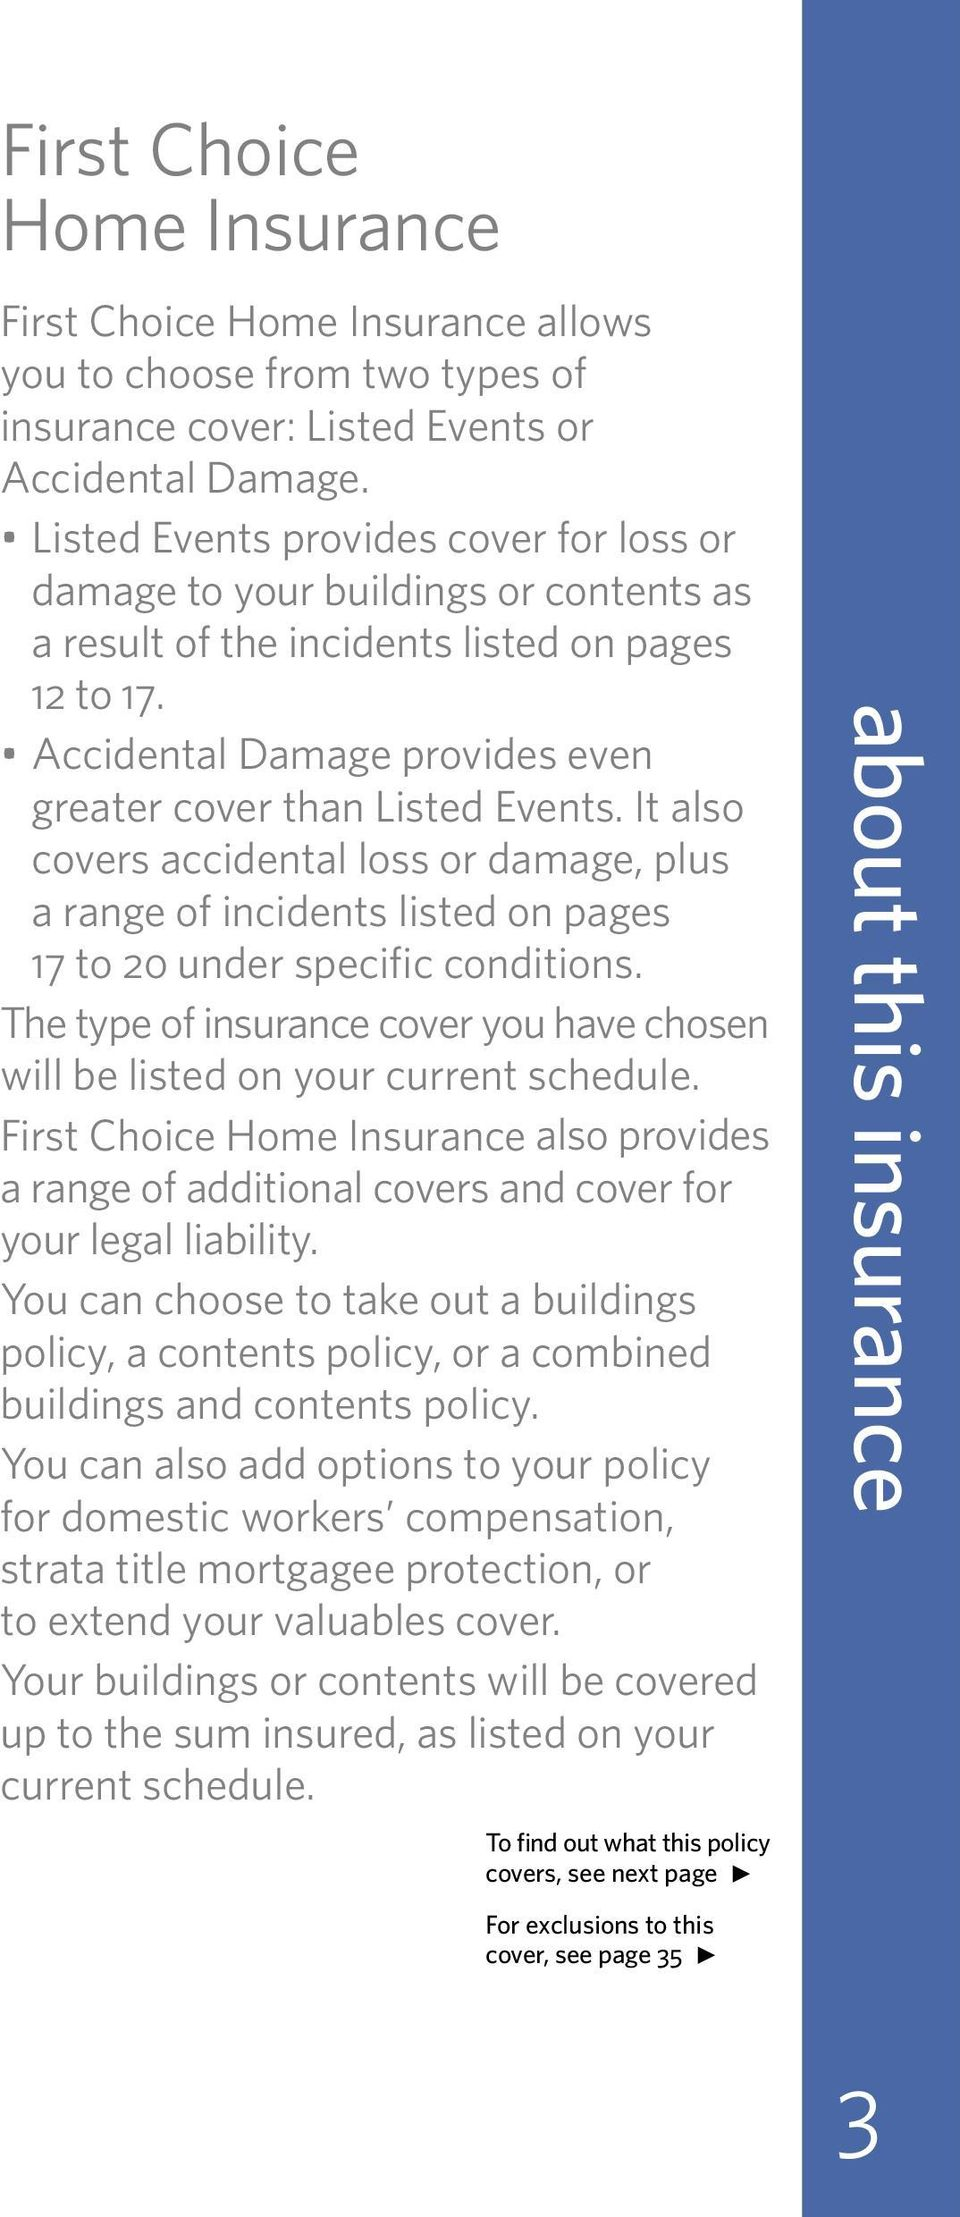 It also covers accidental loss or damage, plus a range of incidents listed on pages 17 to 20 under specific conditions.